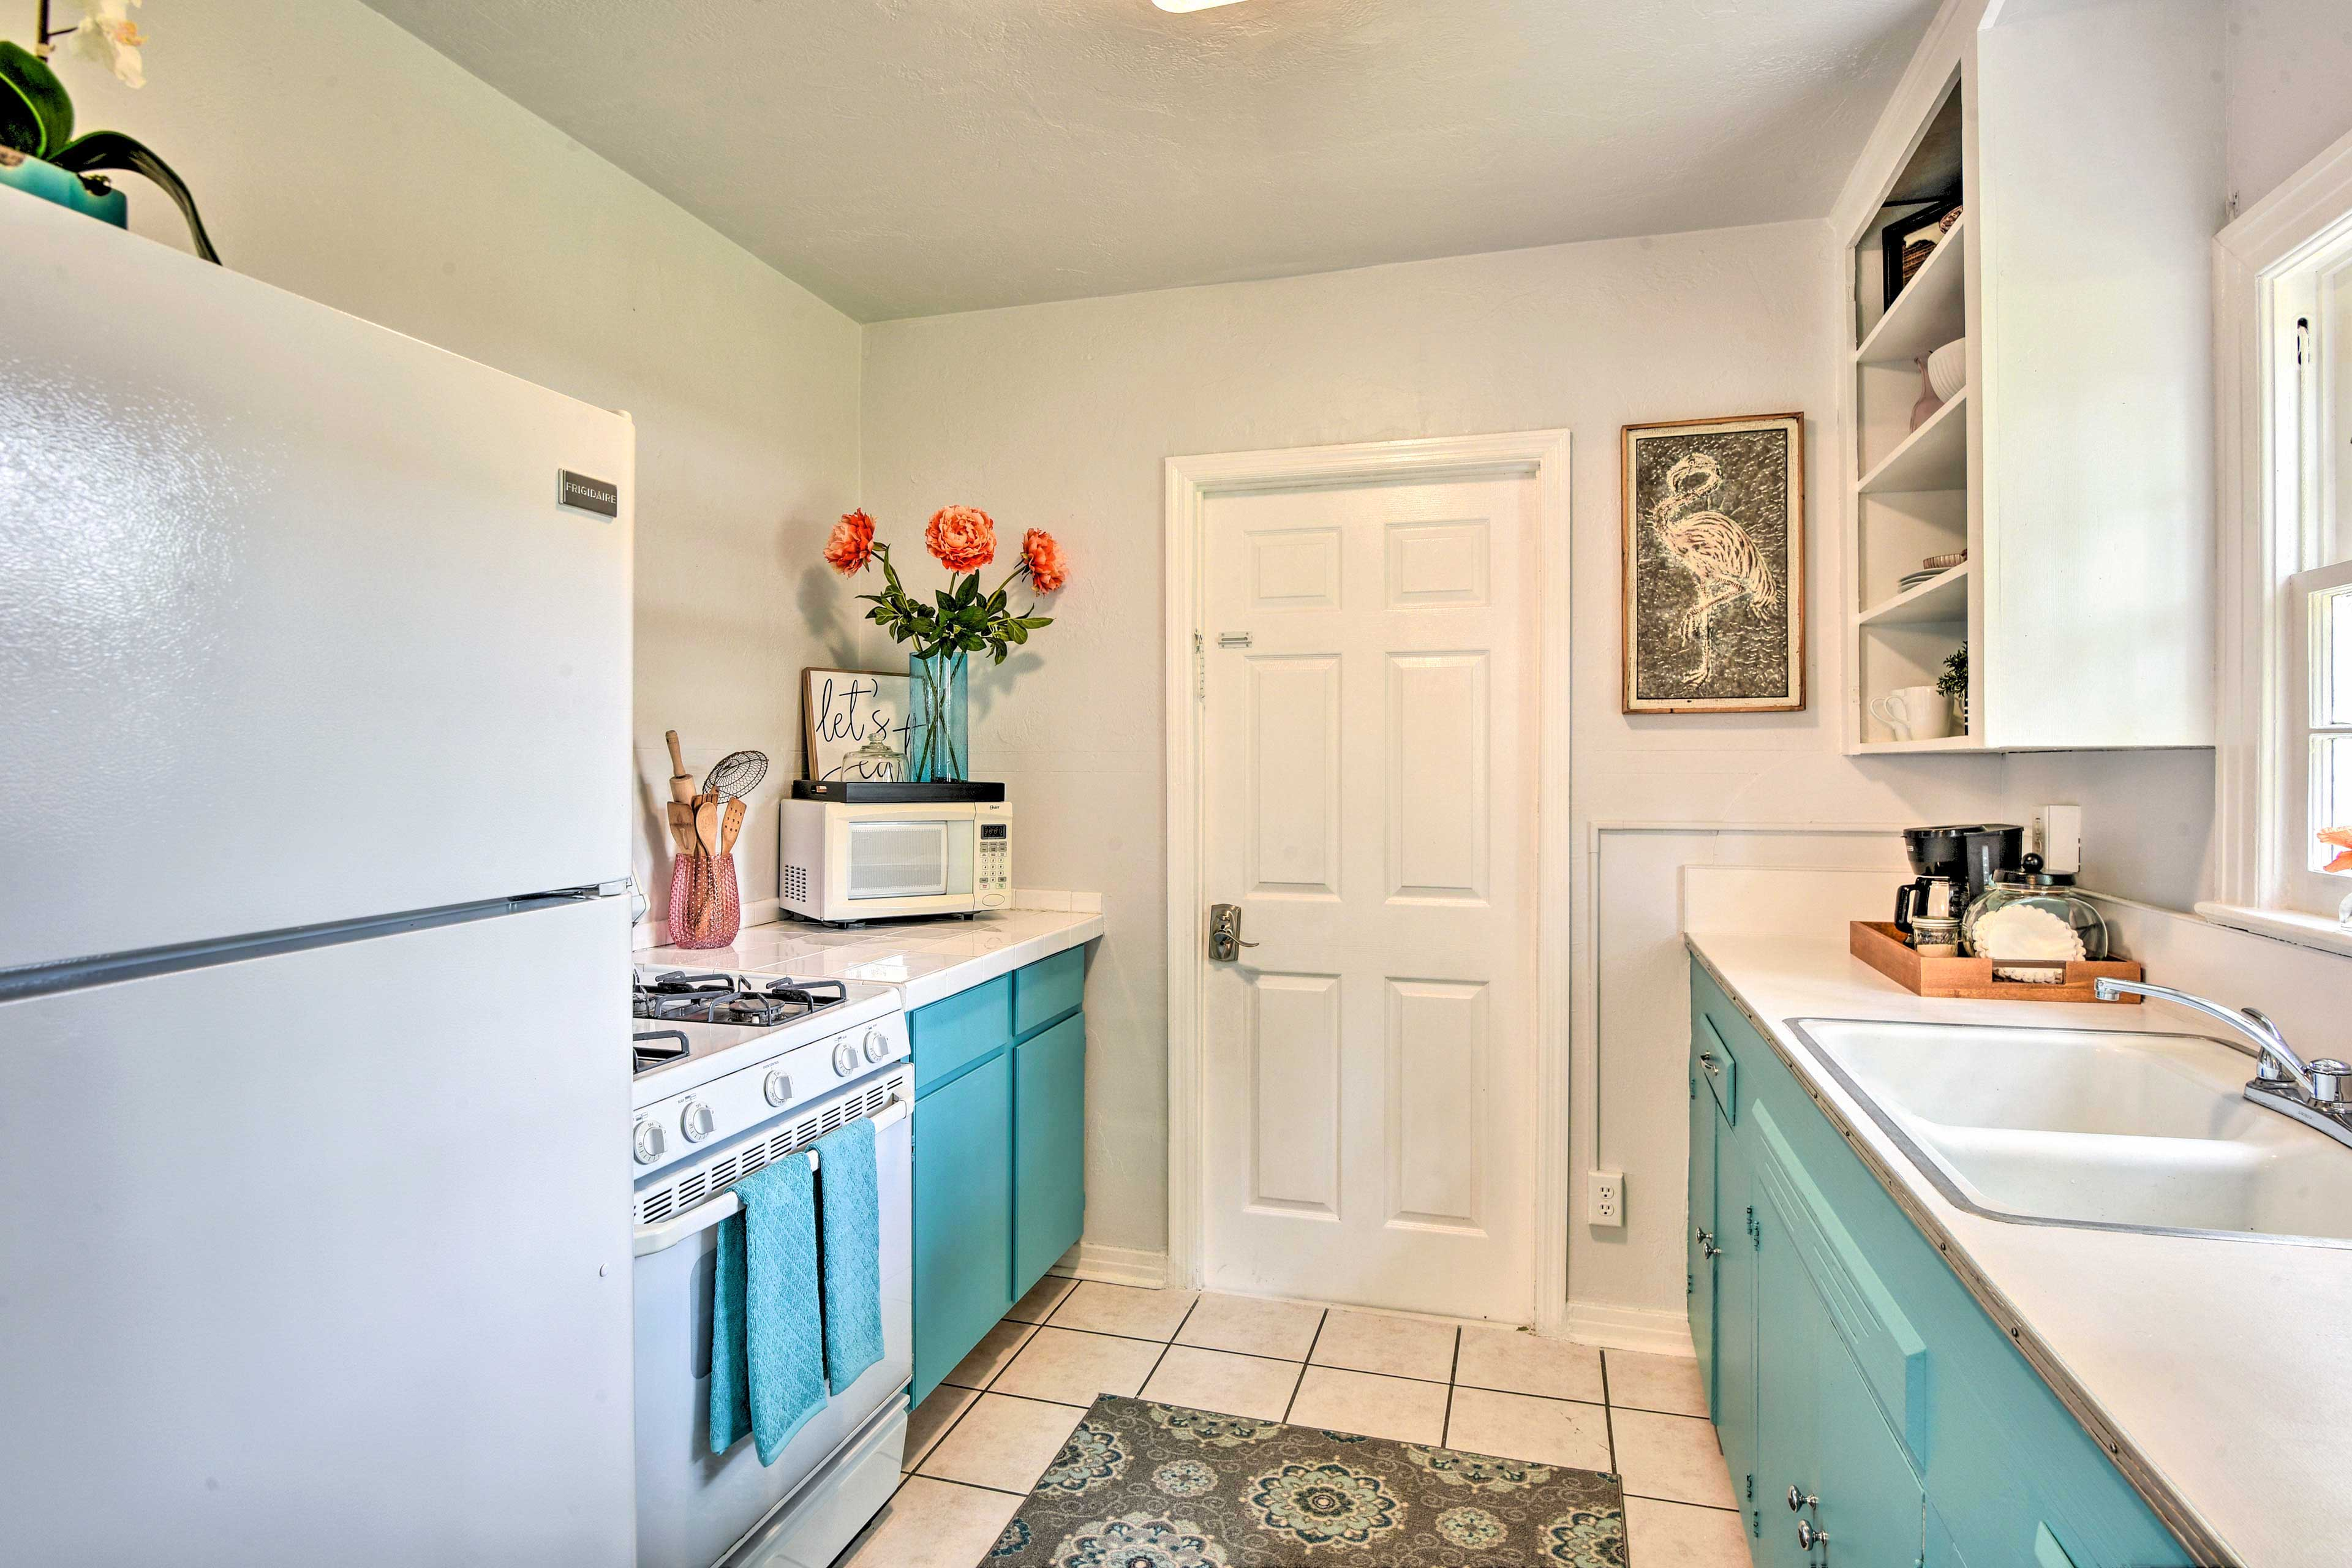 The kitchen is fully equipped with everything you'll need.